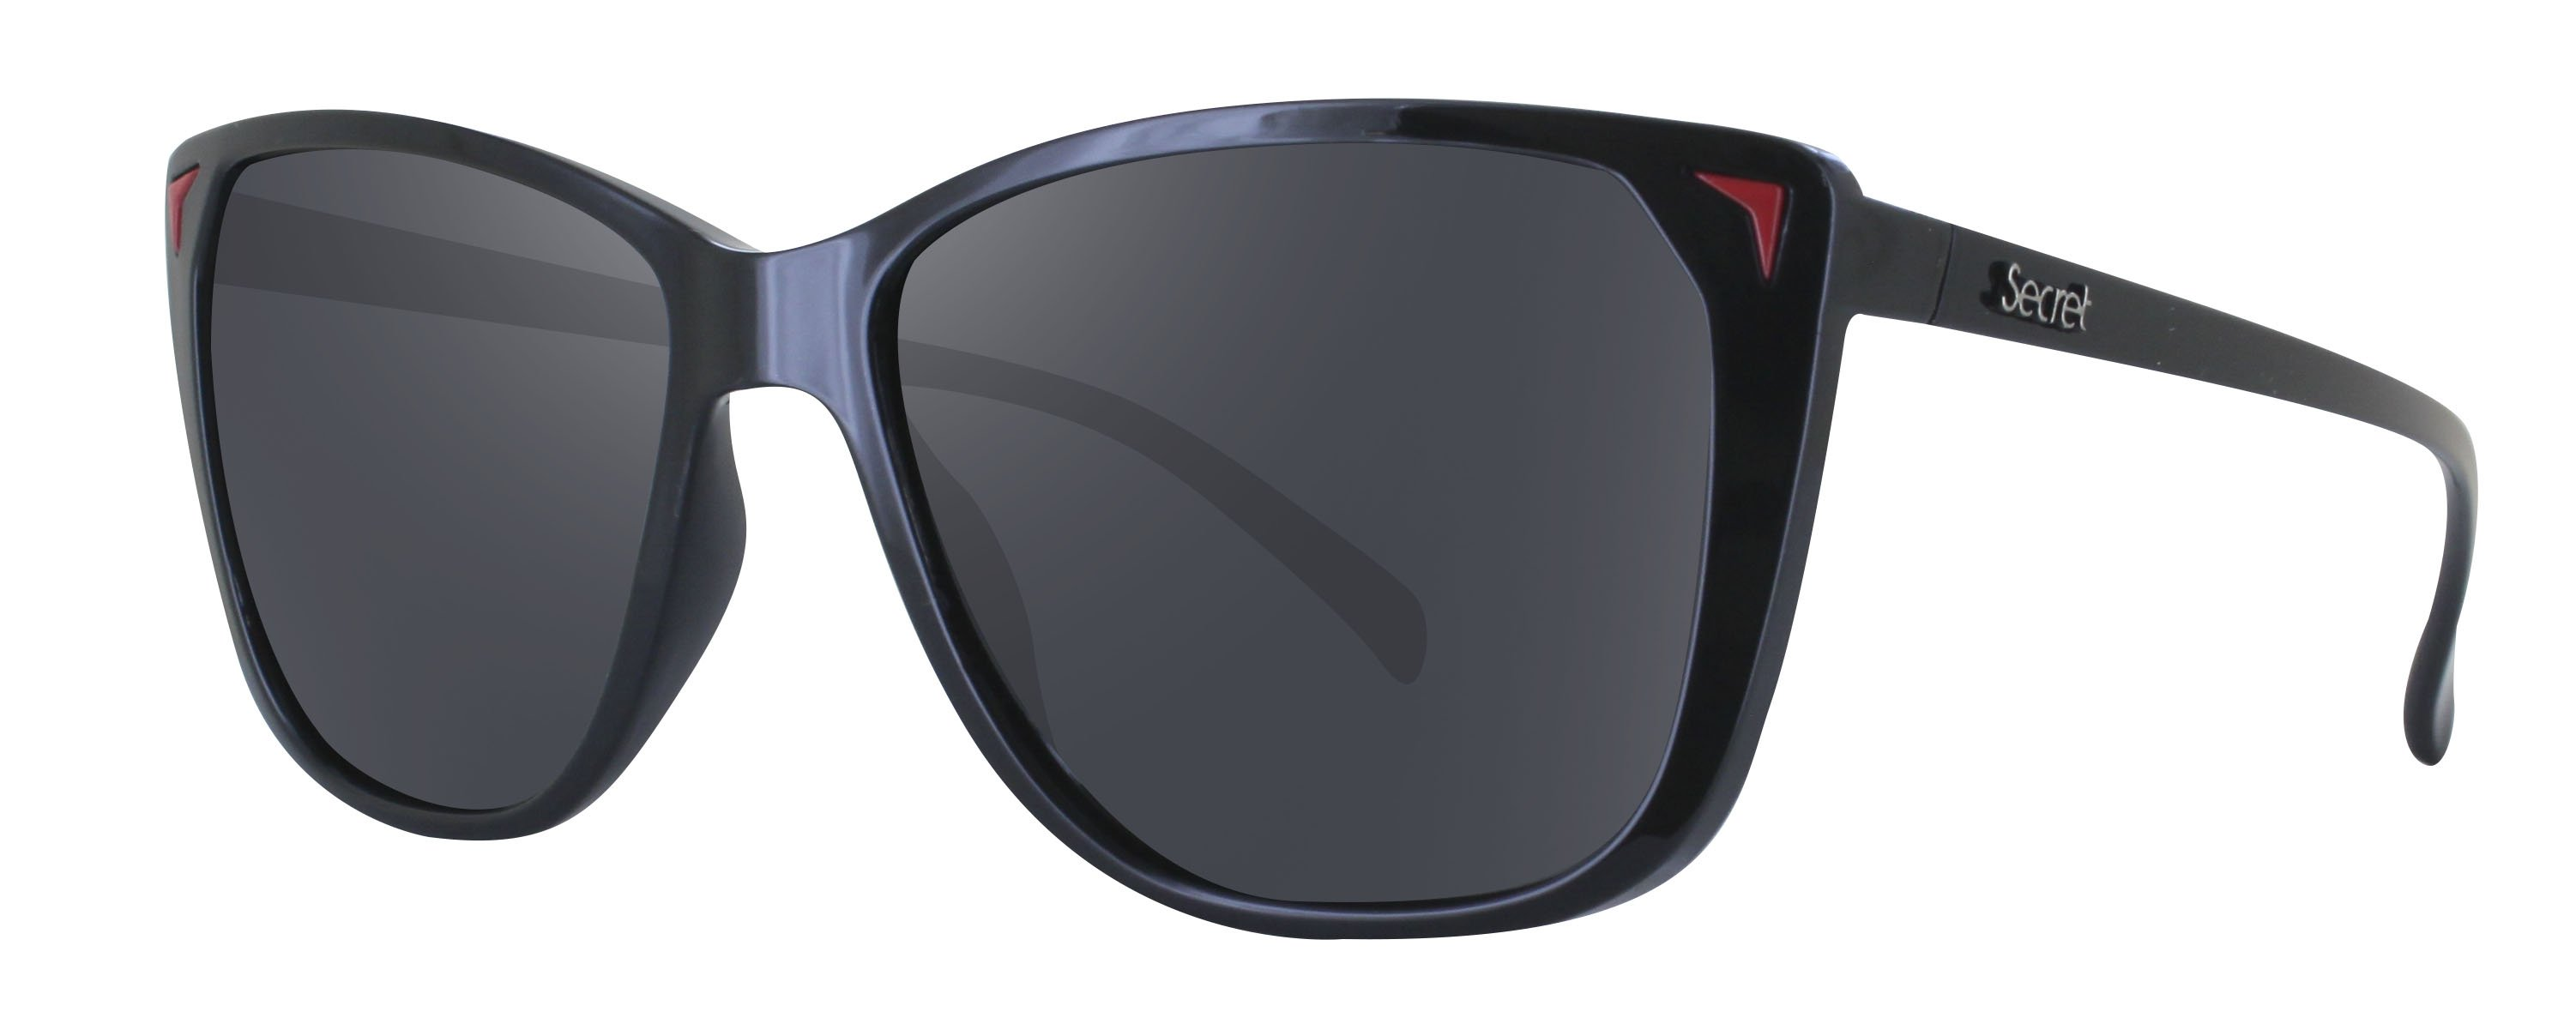 ÓC SECRET LOVEFOOL GLOSS BLACK / POLARIZED GRAY